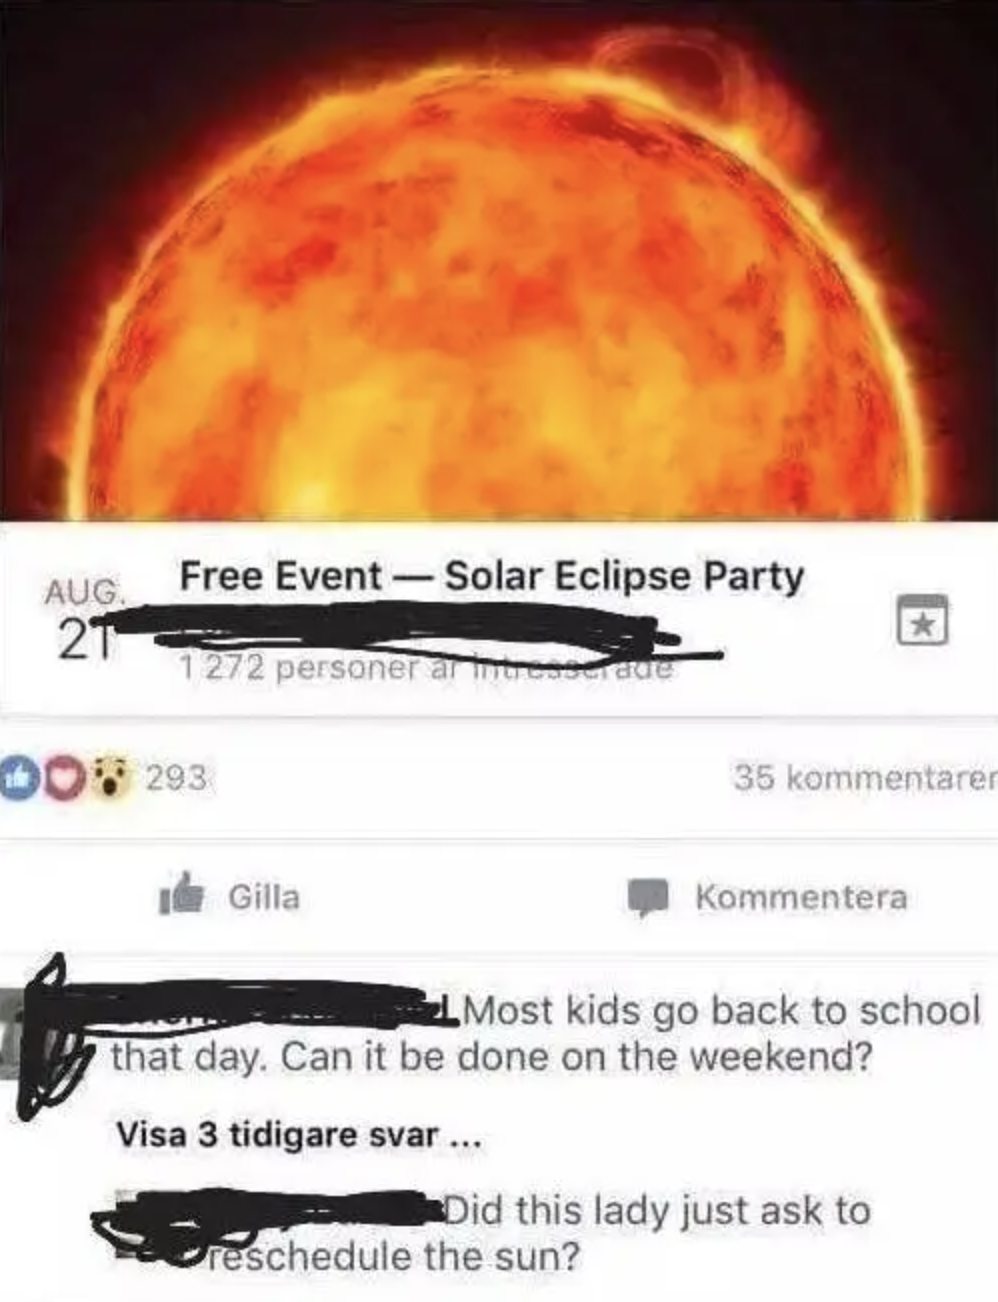 facebook event of an eclipse where one person asks if it can be rescheduled